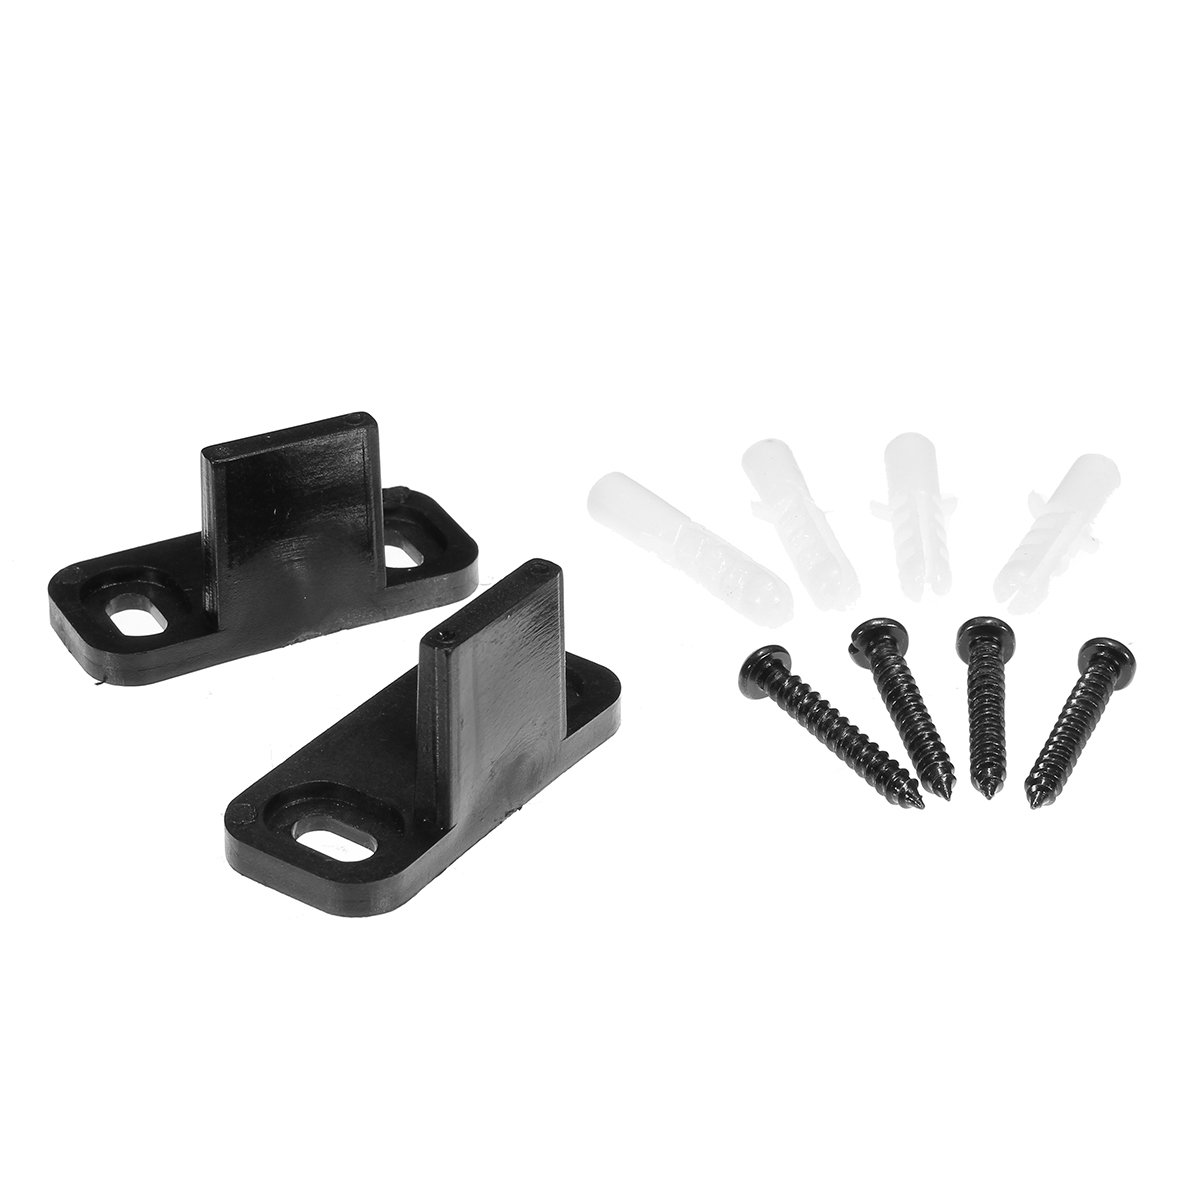 2PCS Black Adjustable Bottom Floor Guide Clip For Sliding Barn Door Hardware with 4 Screws 45x20x23mm